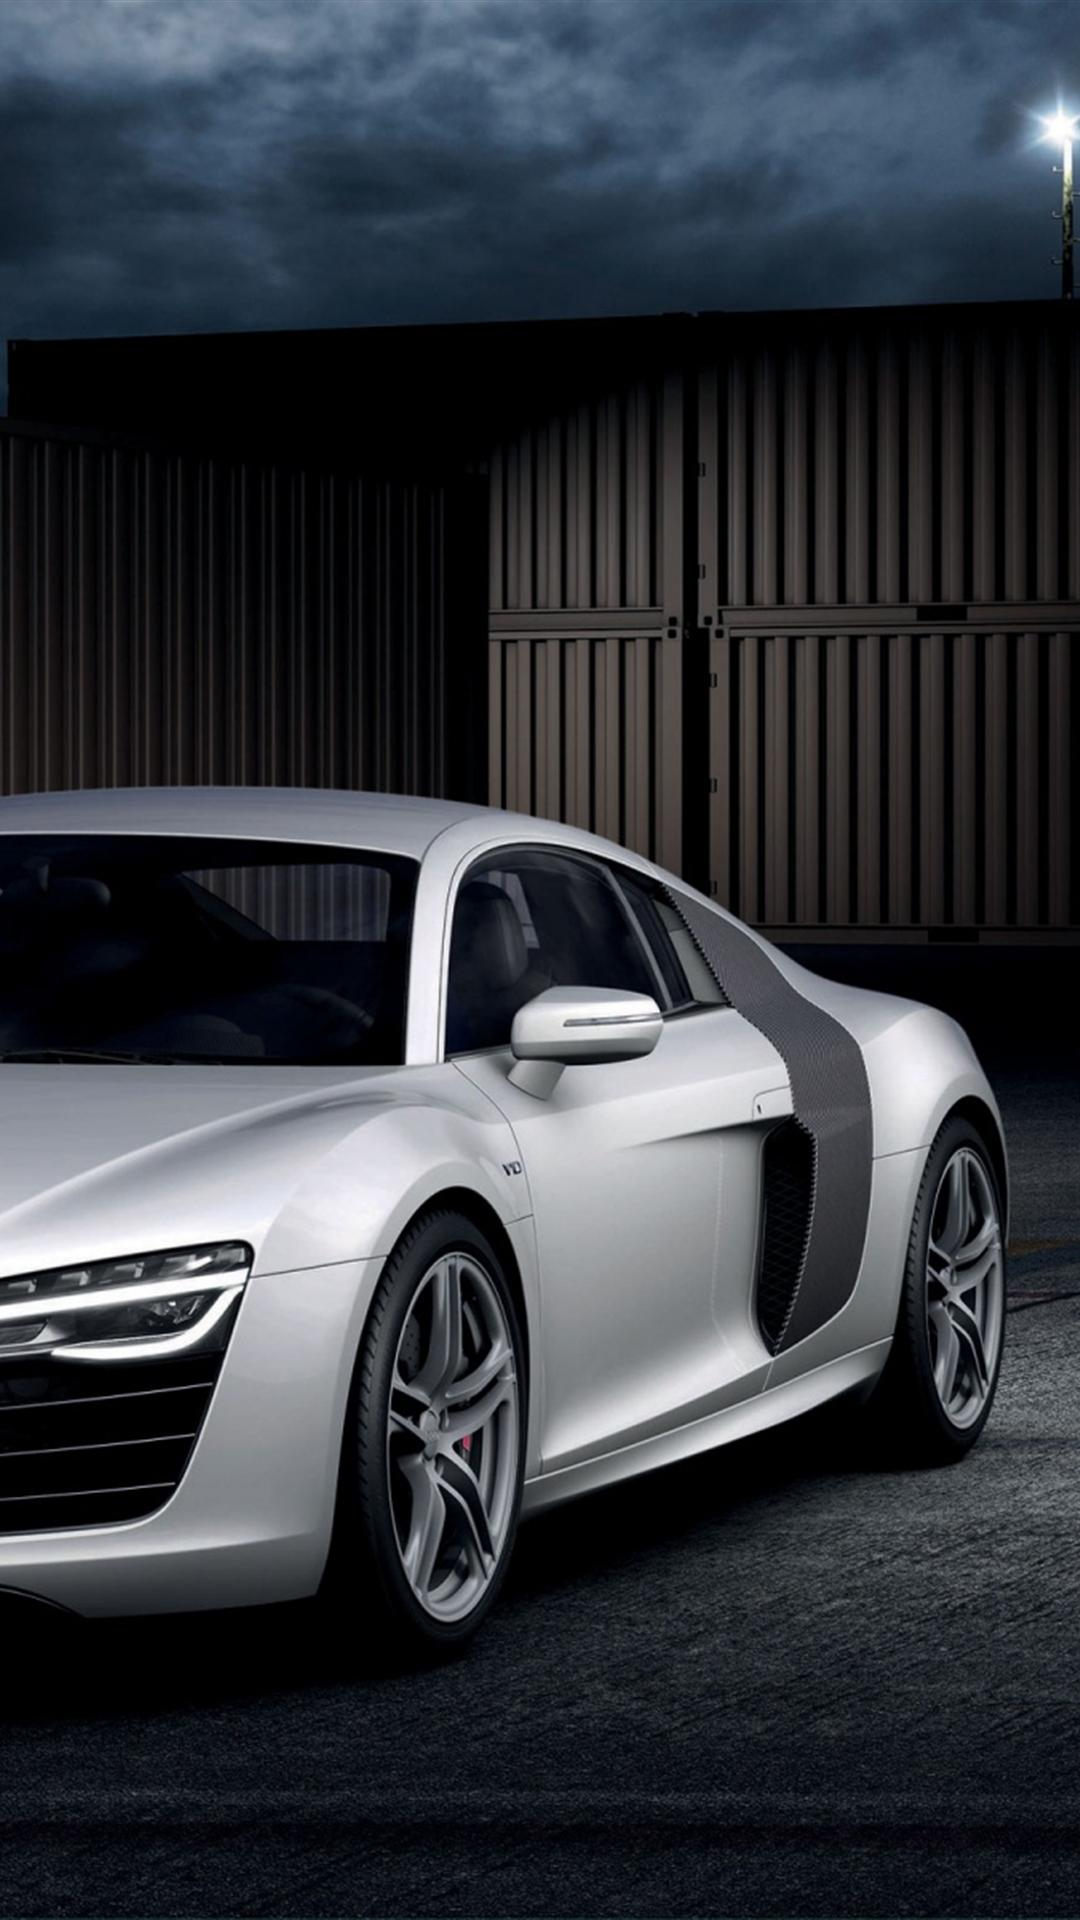 Free Games -whited00r_tested.ipa Audi R8 Android Wallpaper - Android Hd Wallpapers